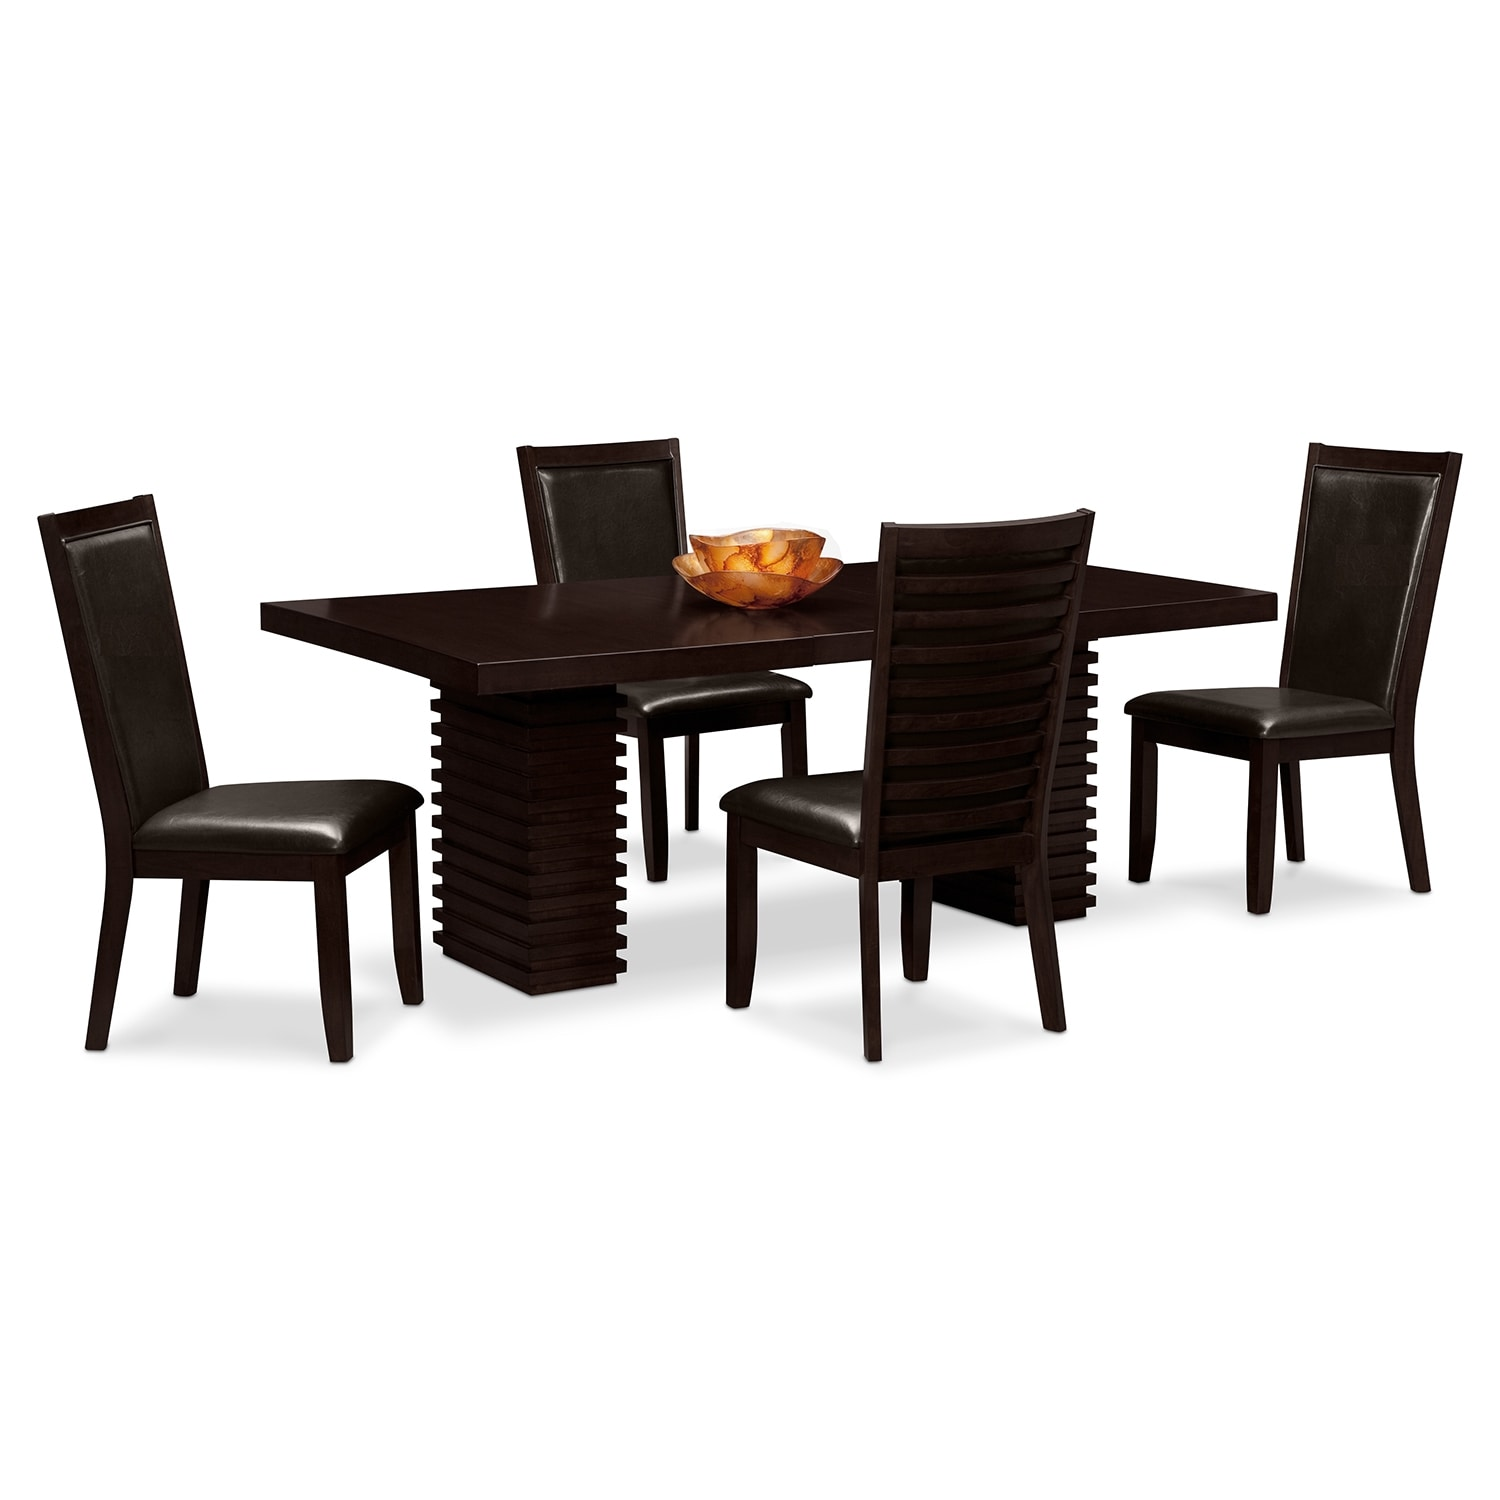 Paragon Table and 4 Chairs Merlot and Brown